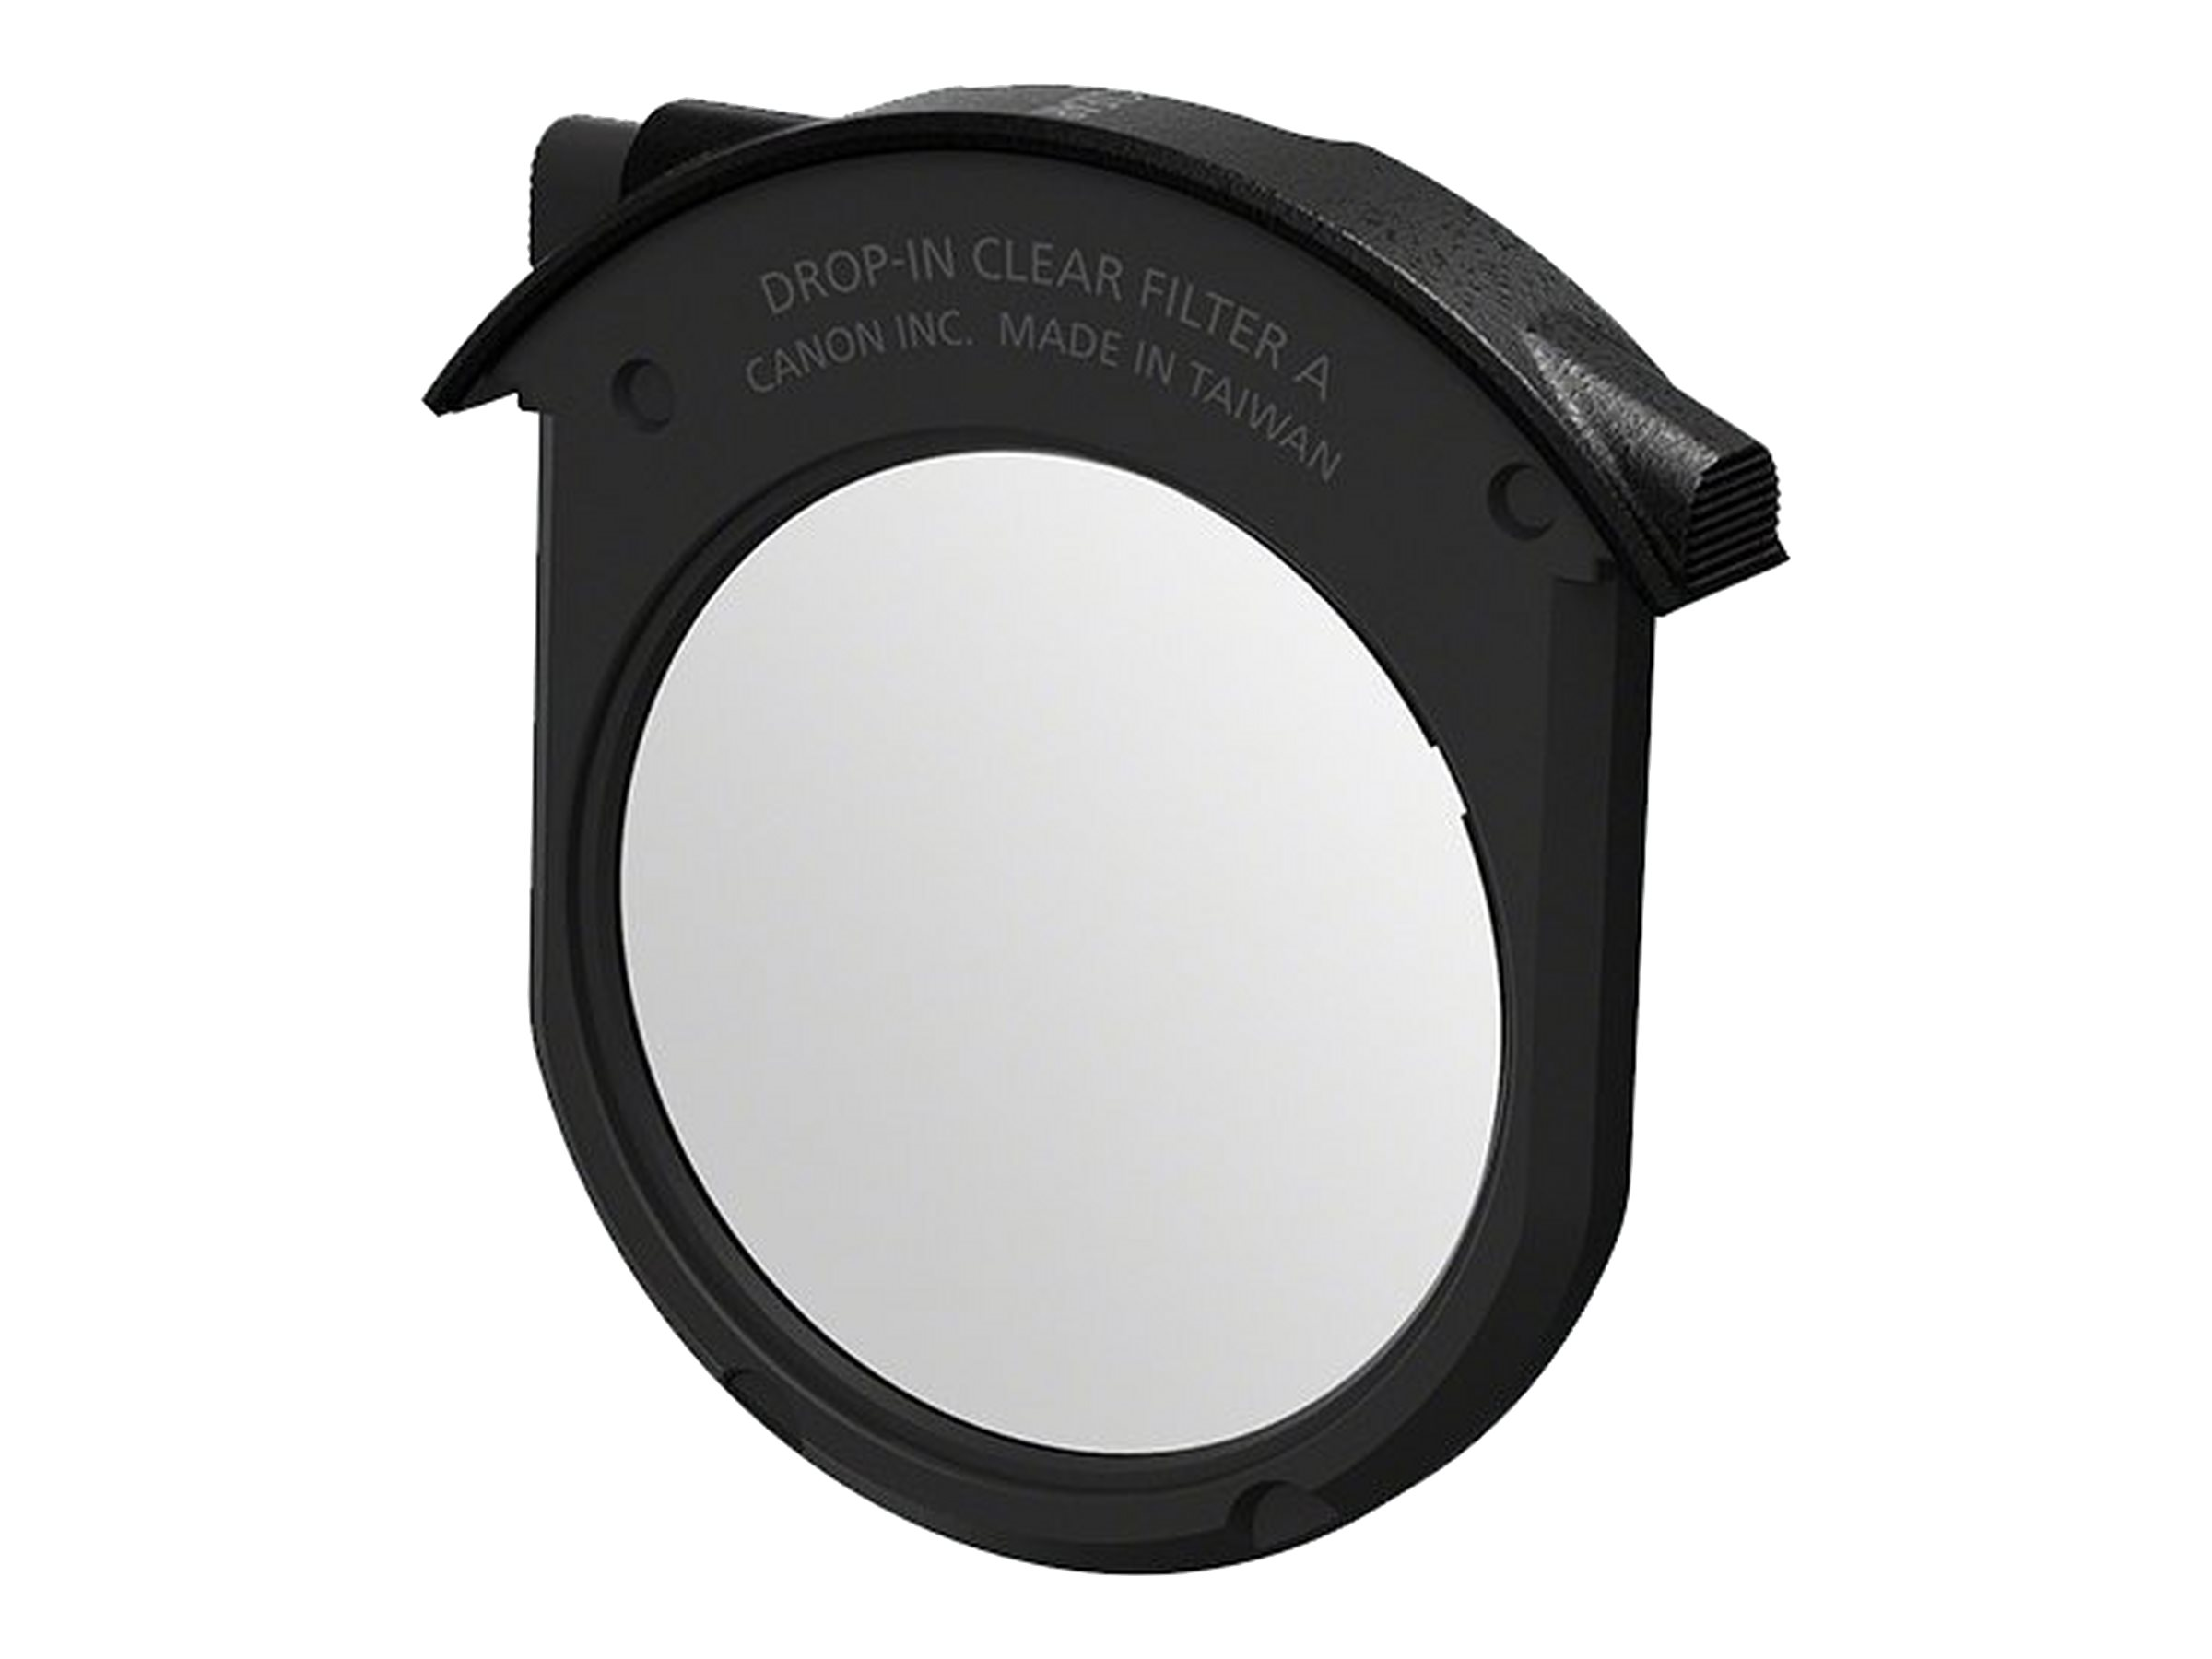 Canon Drop-in Clear Filter A - Filter - klar - für Canon Drop-in Circular Polarizing Filter A, Drop-In Variable ND Filter A